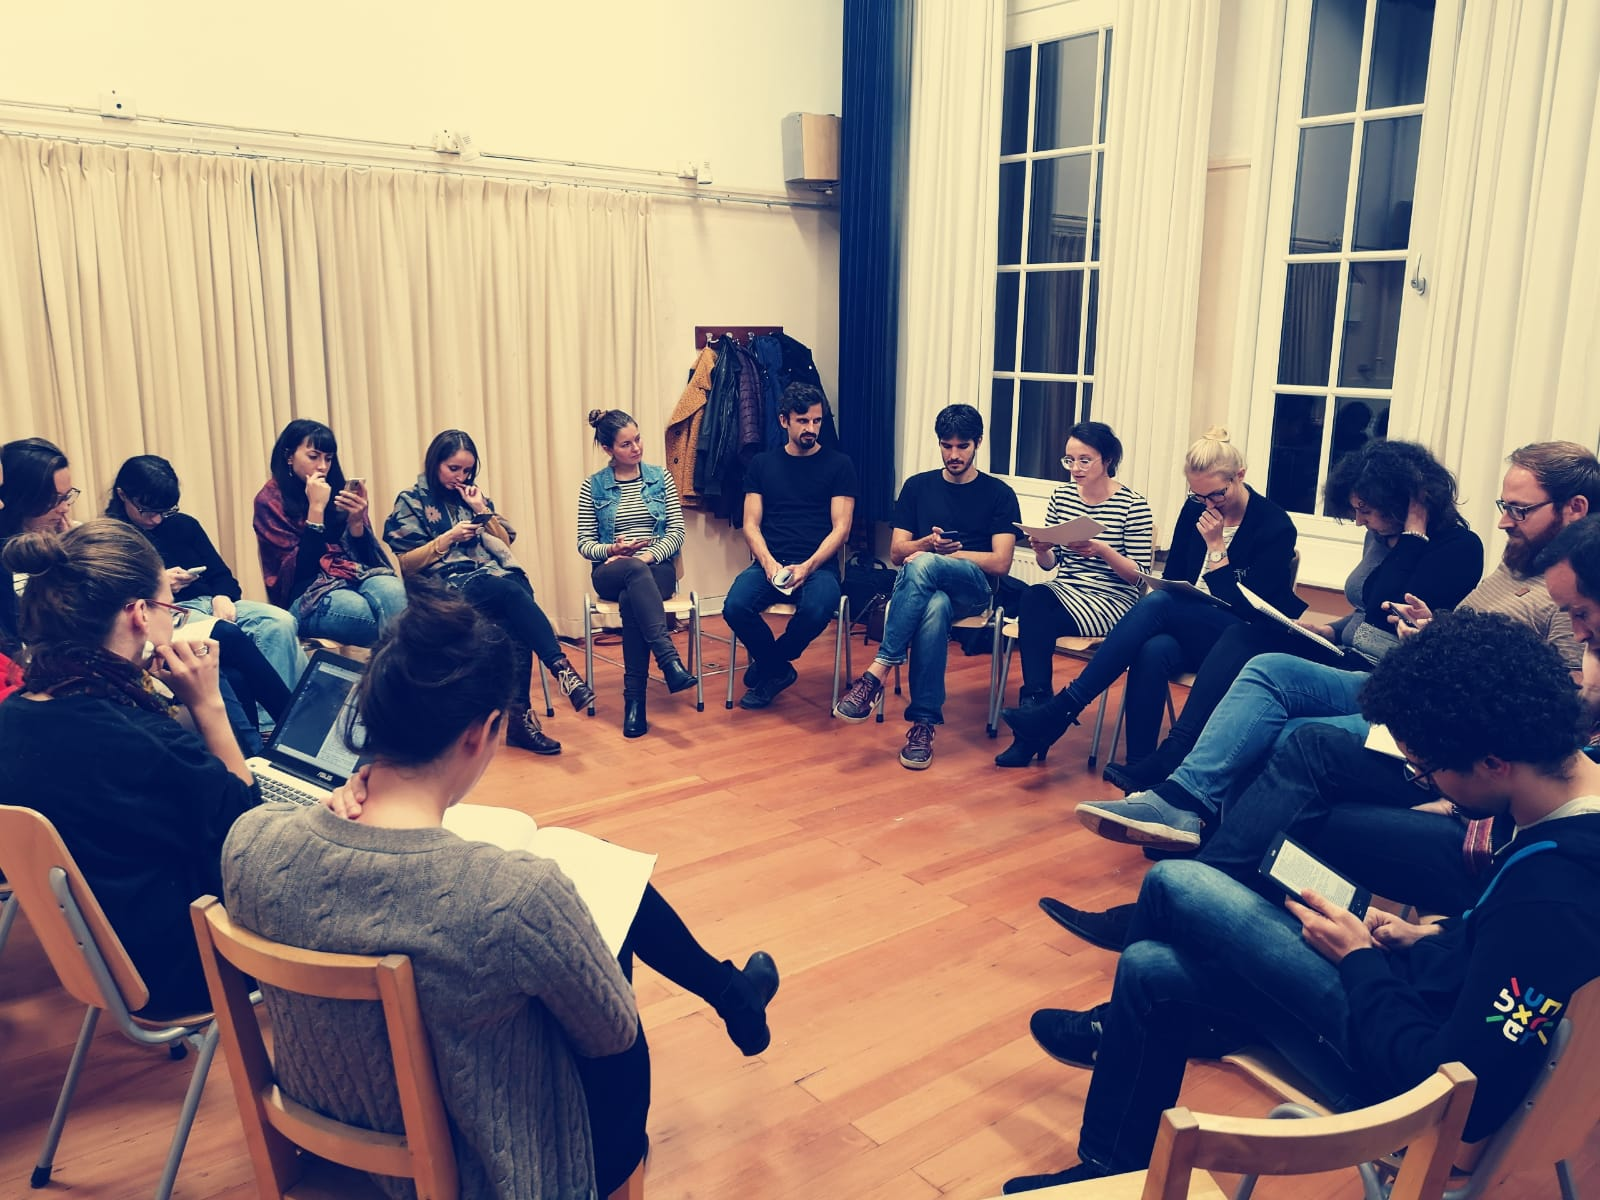 Acting Class Beginners, group of people is sitting on chars in a circle